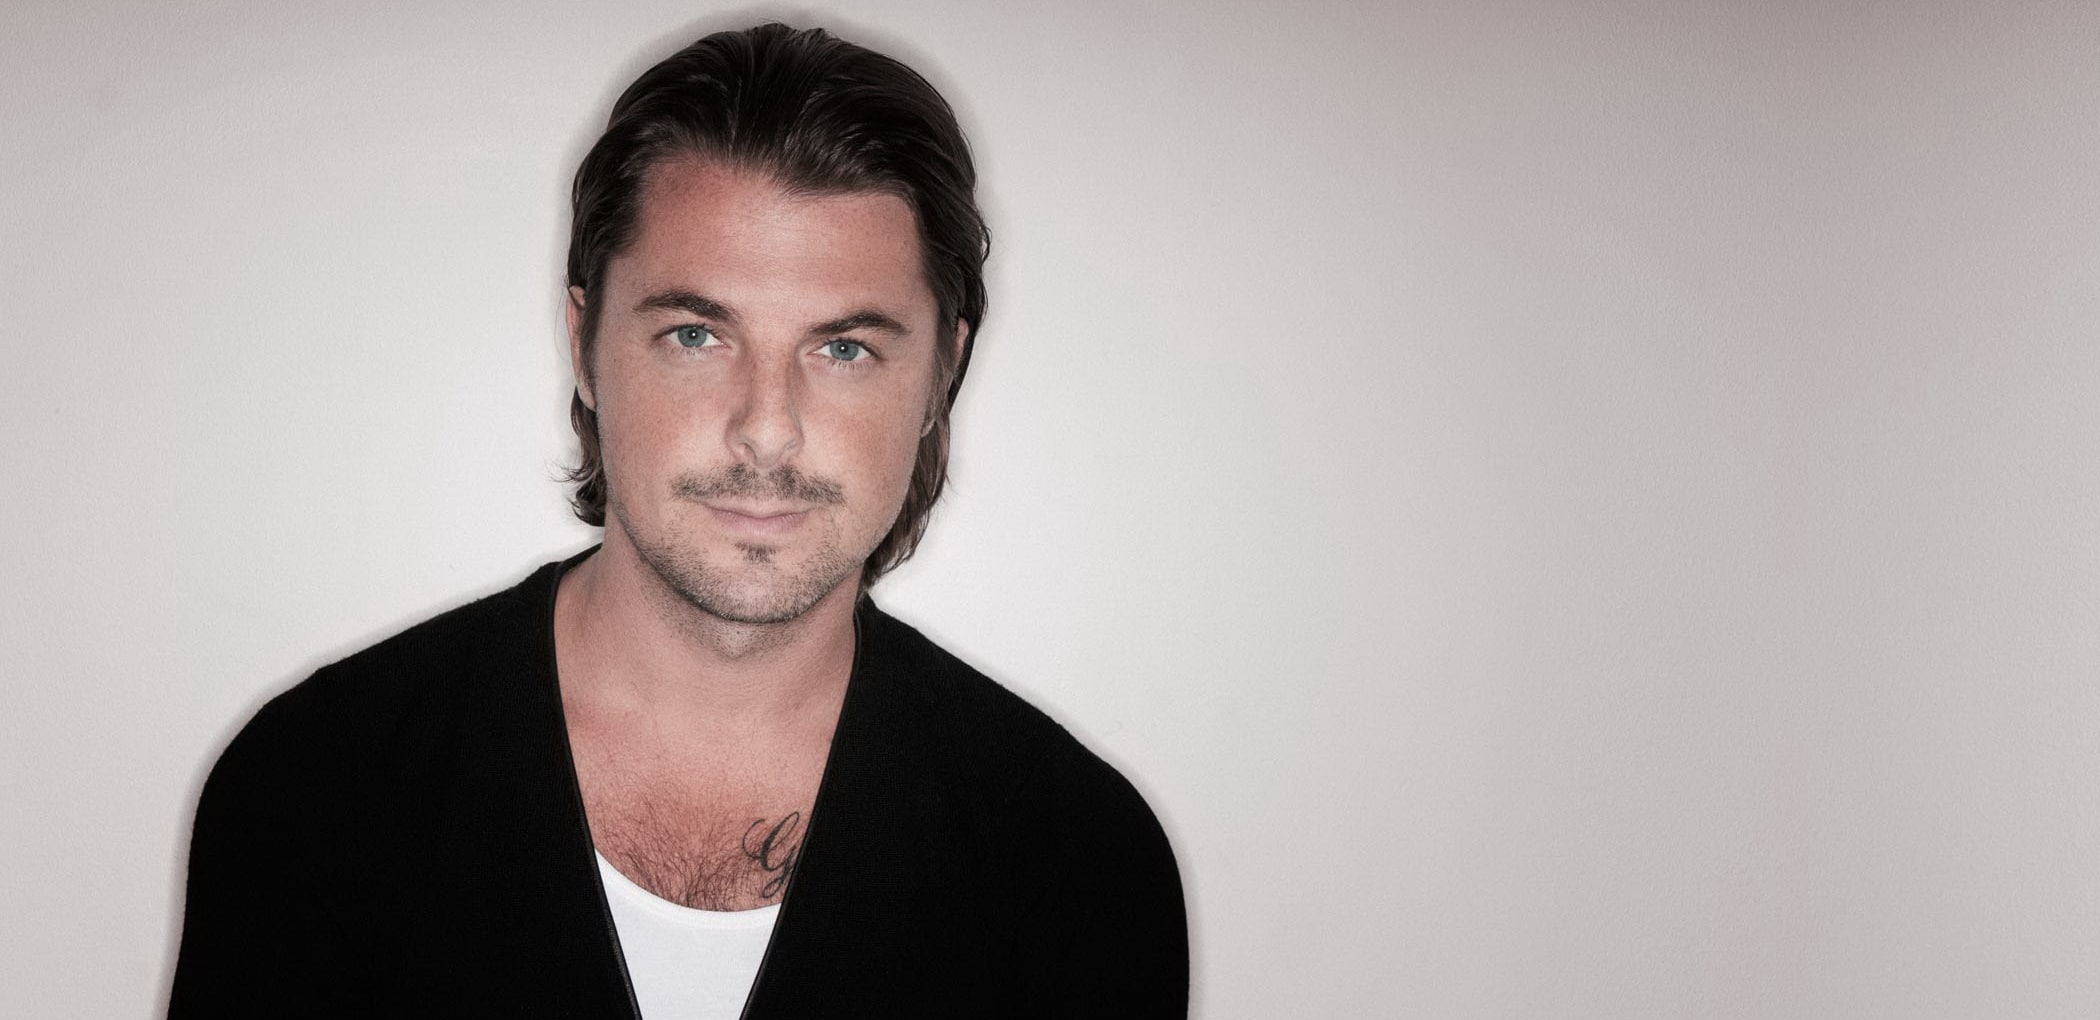 Axwell Net Worth, Salary, Income & Assets in 2018